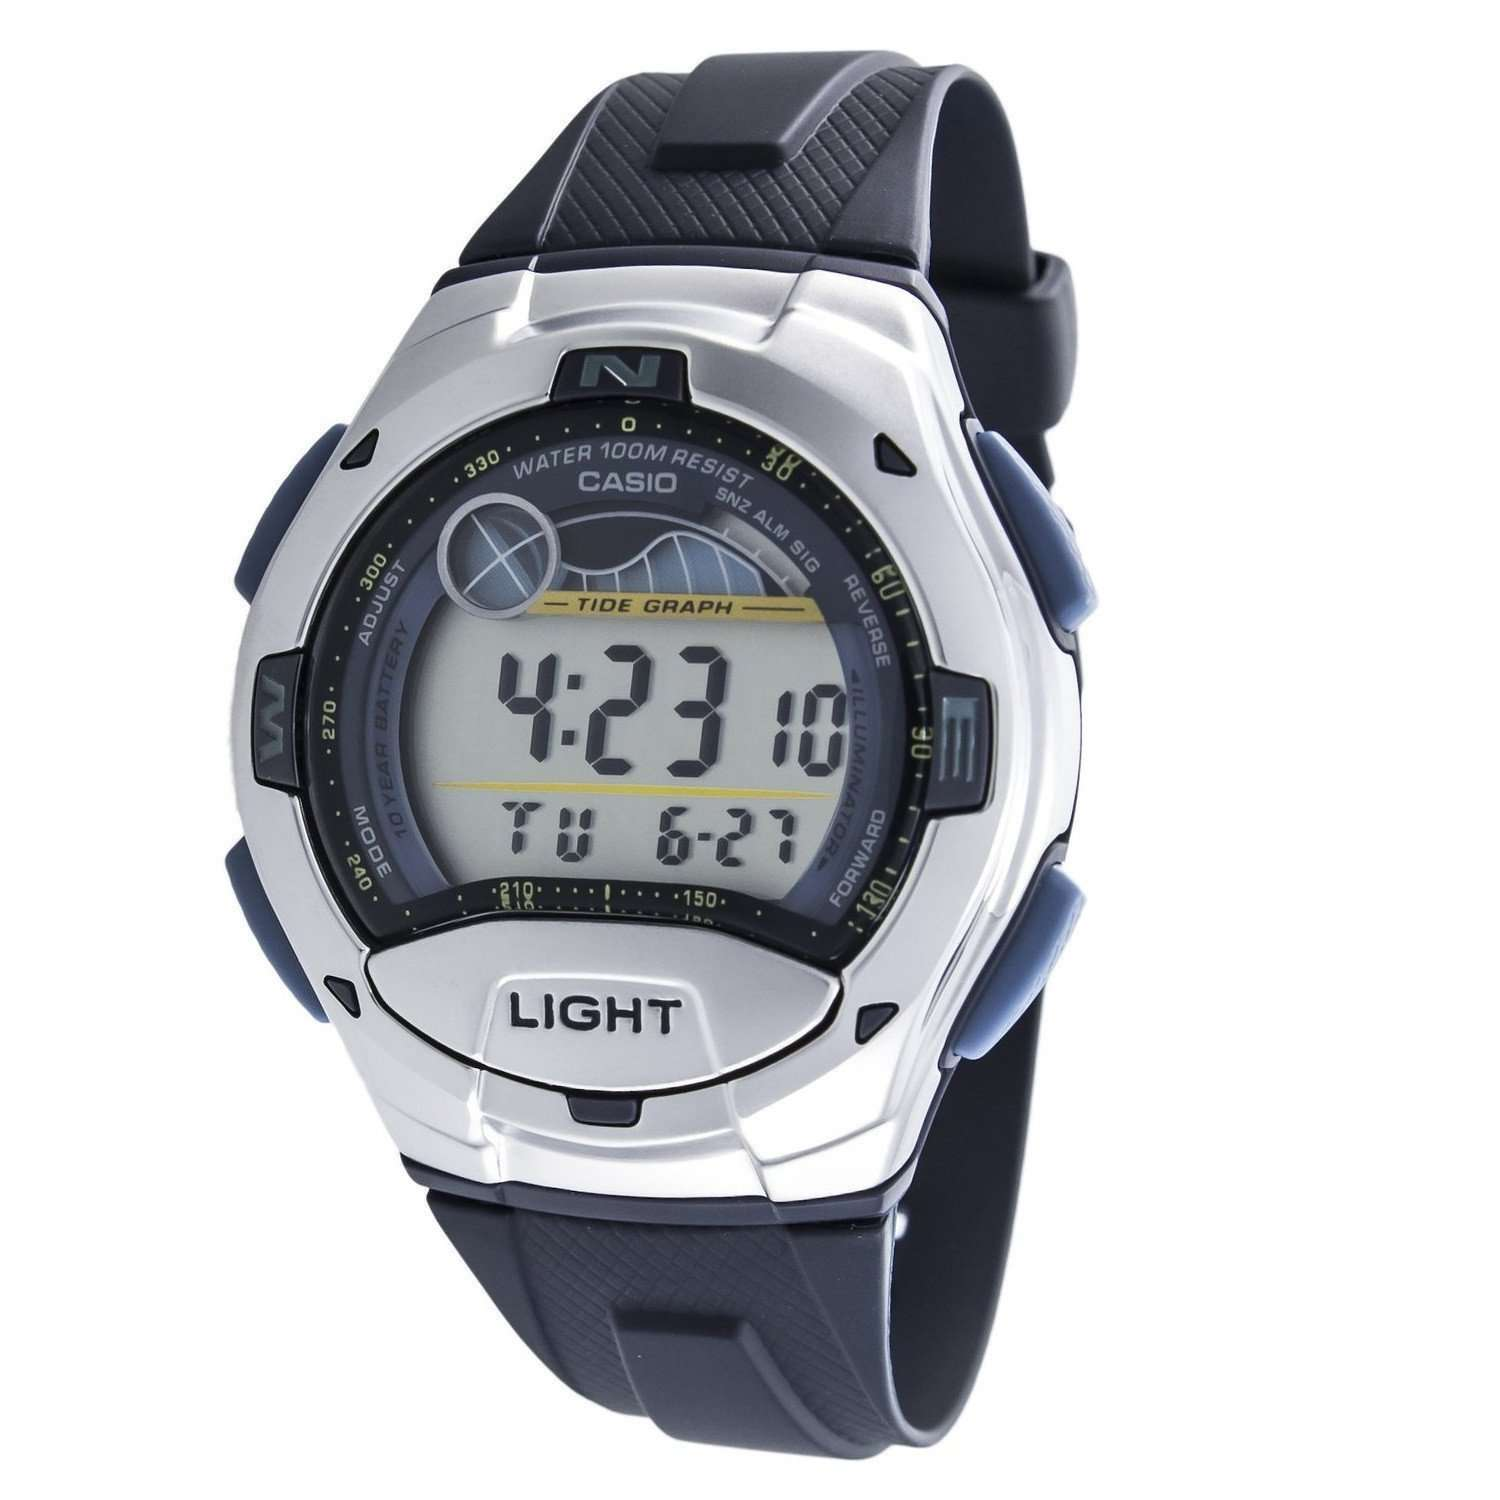 Casio W753-2AVES Digital Chronograph Watch - TEXET